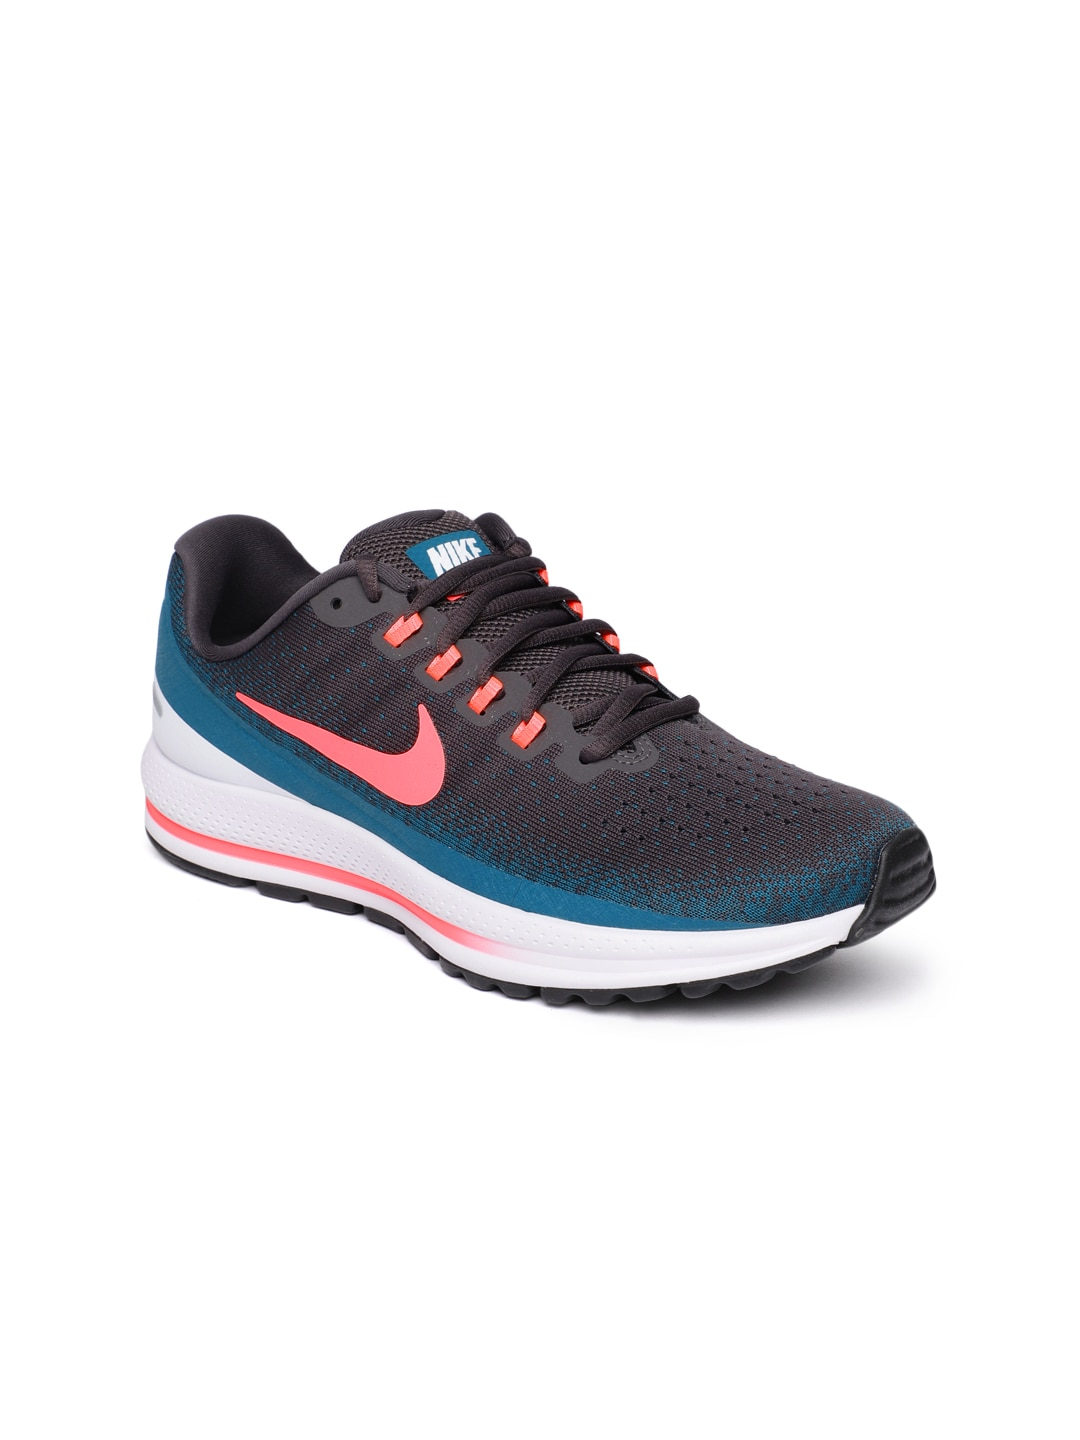 4fe68900128b Nike Zoom Air Sports Shoes - Buy Nike Zoom Air Sports Shoes online in India